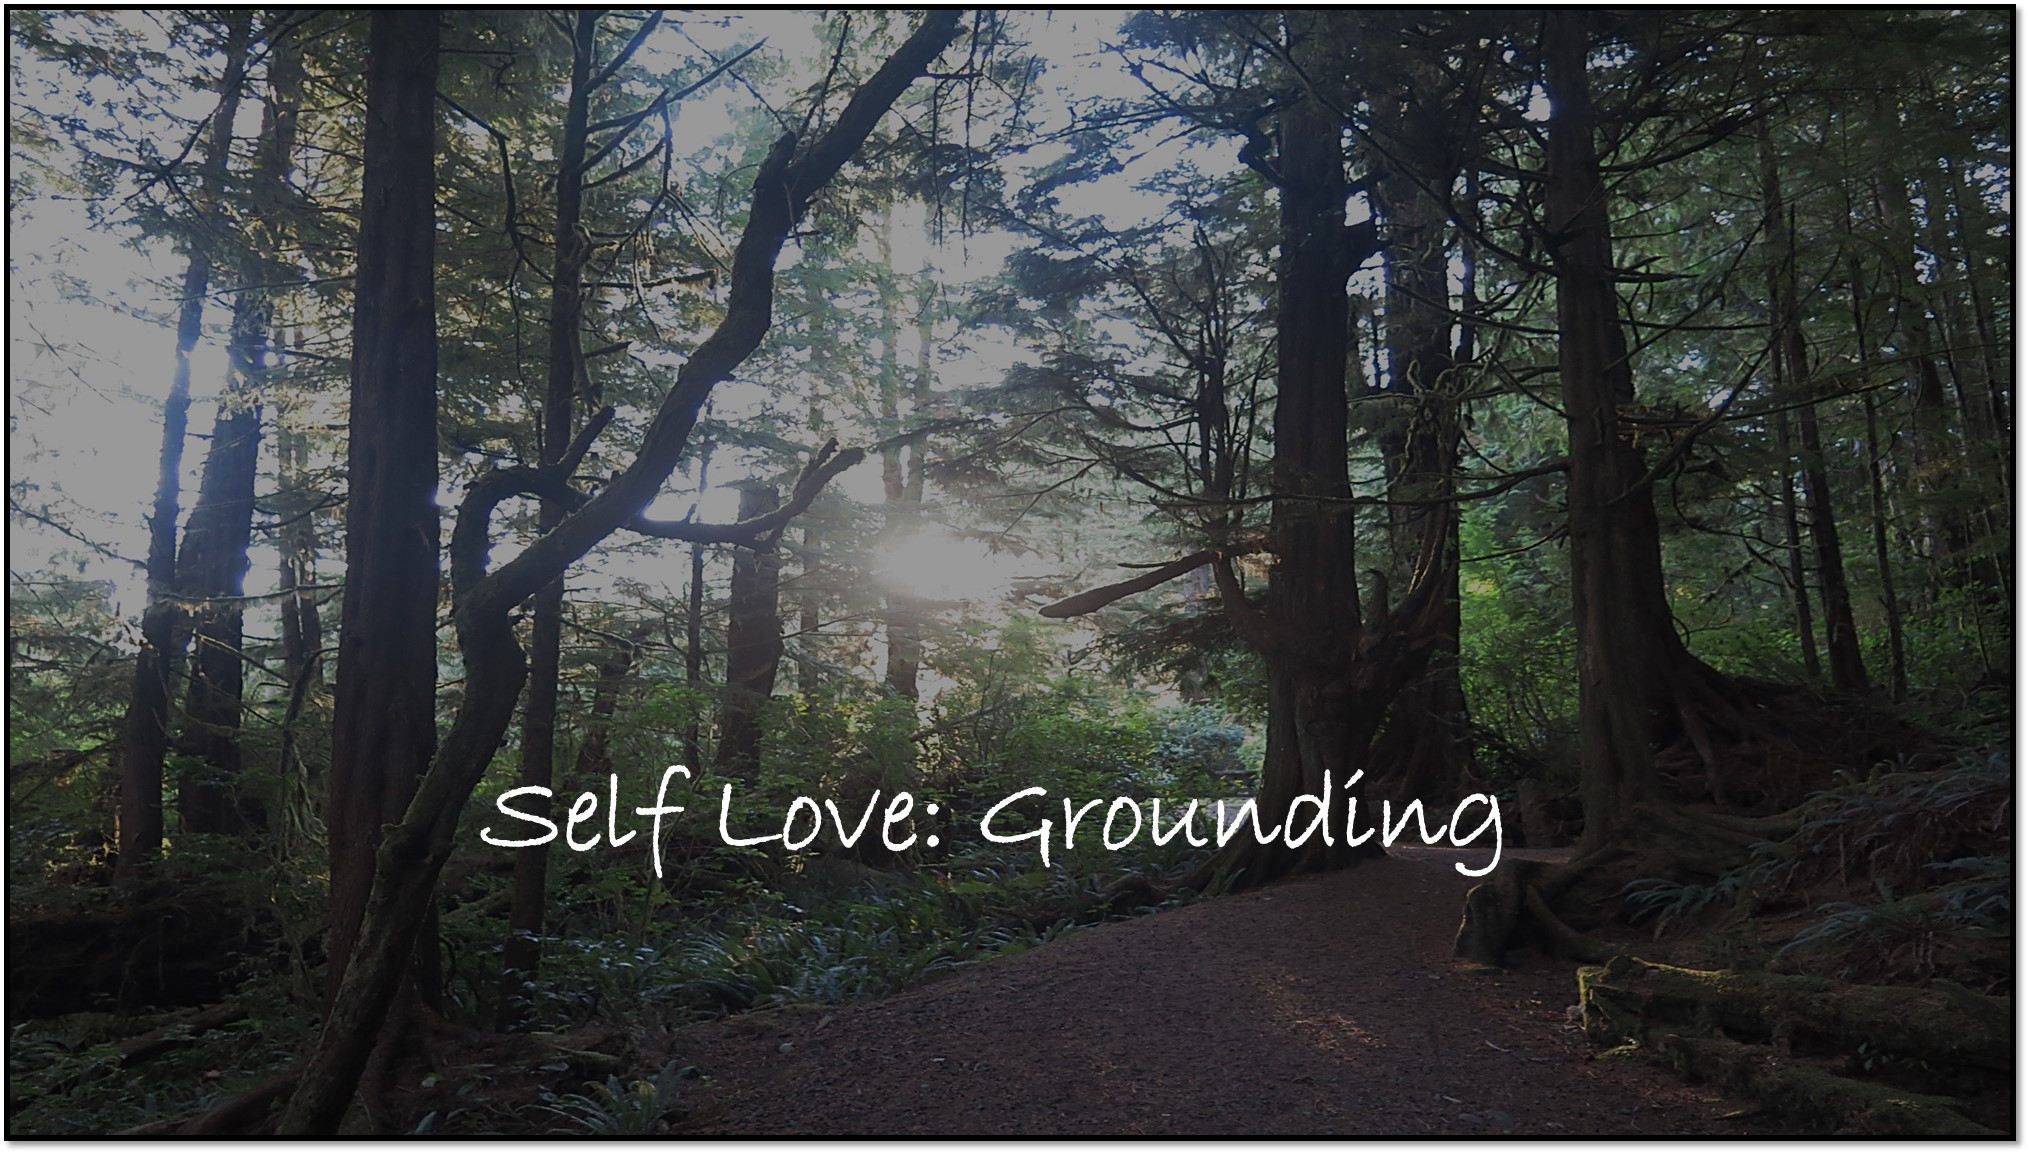 Grounding - Feeling disconnected or stressed? Reconnect and ground yourself as you journey to understand the deep roots of a beautiful tree as it's trunk and leaves reach for the universe in perfect balance.